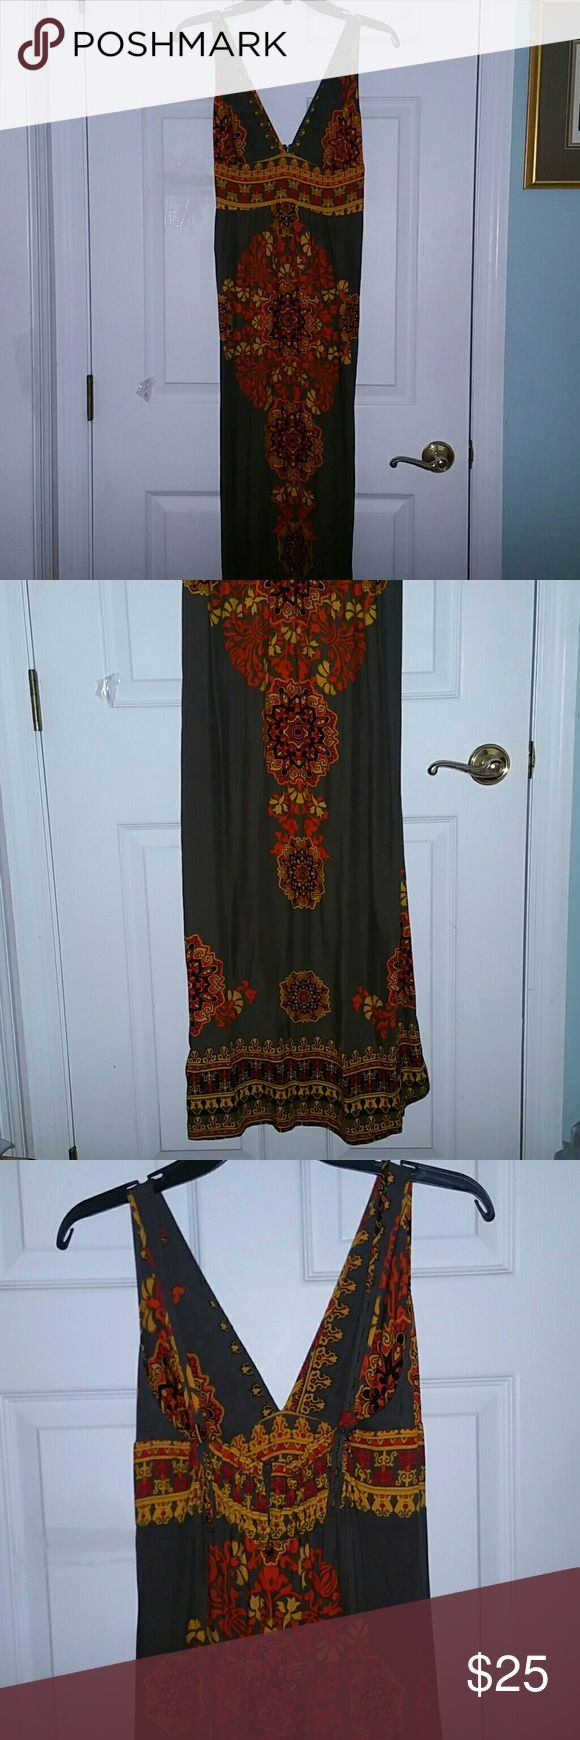 CUTE & COMFY FLORAL&PAISLEY MAXI DRESS FSU COLORS! ~ ANGIE ~ CUTE, COMFY, LIGHTWEIGHT, SEXY SPRING/SUMMER FESTIVAL MAXI DRESS. DEEP V NECK, ADJUSTABLE STRAPS WITH BUTTON & BUTTON HOLES,  SMOCKED (STRETCHY) BACK. DARK GREY, GOLD, RED, ORANGE, BLACK.  Size: MEDIUM  EEUC Excellent Preloved Condition. Worn Once to a FSU Seminoles Game! Gently Laundered, and Hung To Dry.  100% Rayon  No Smoking, Buy It Now, Bundle Discounts Available, Reasonable Offers Only, Sorry NO Trades!  HAPPY SHOPPING=)…